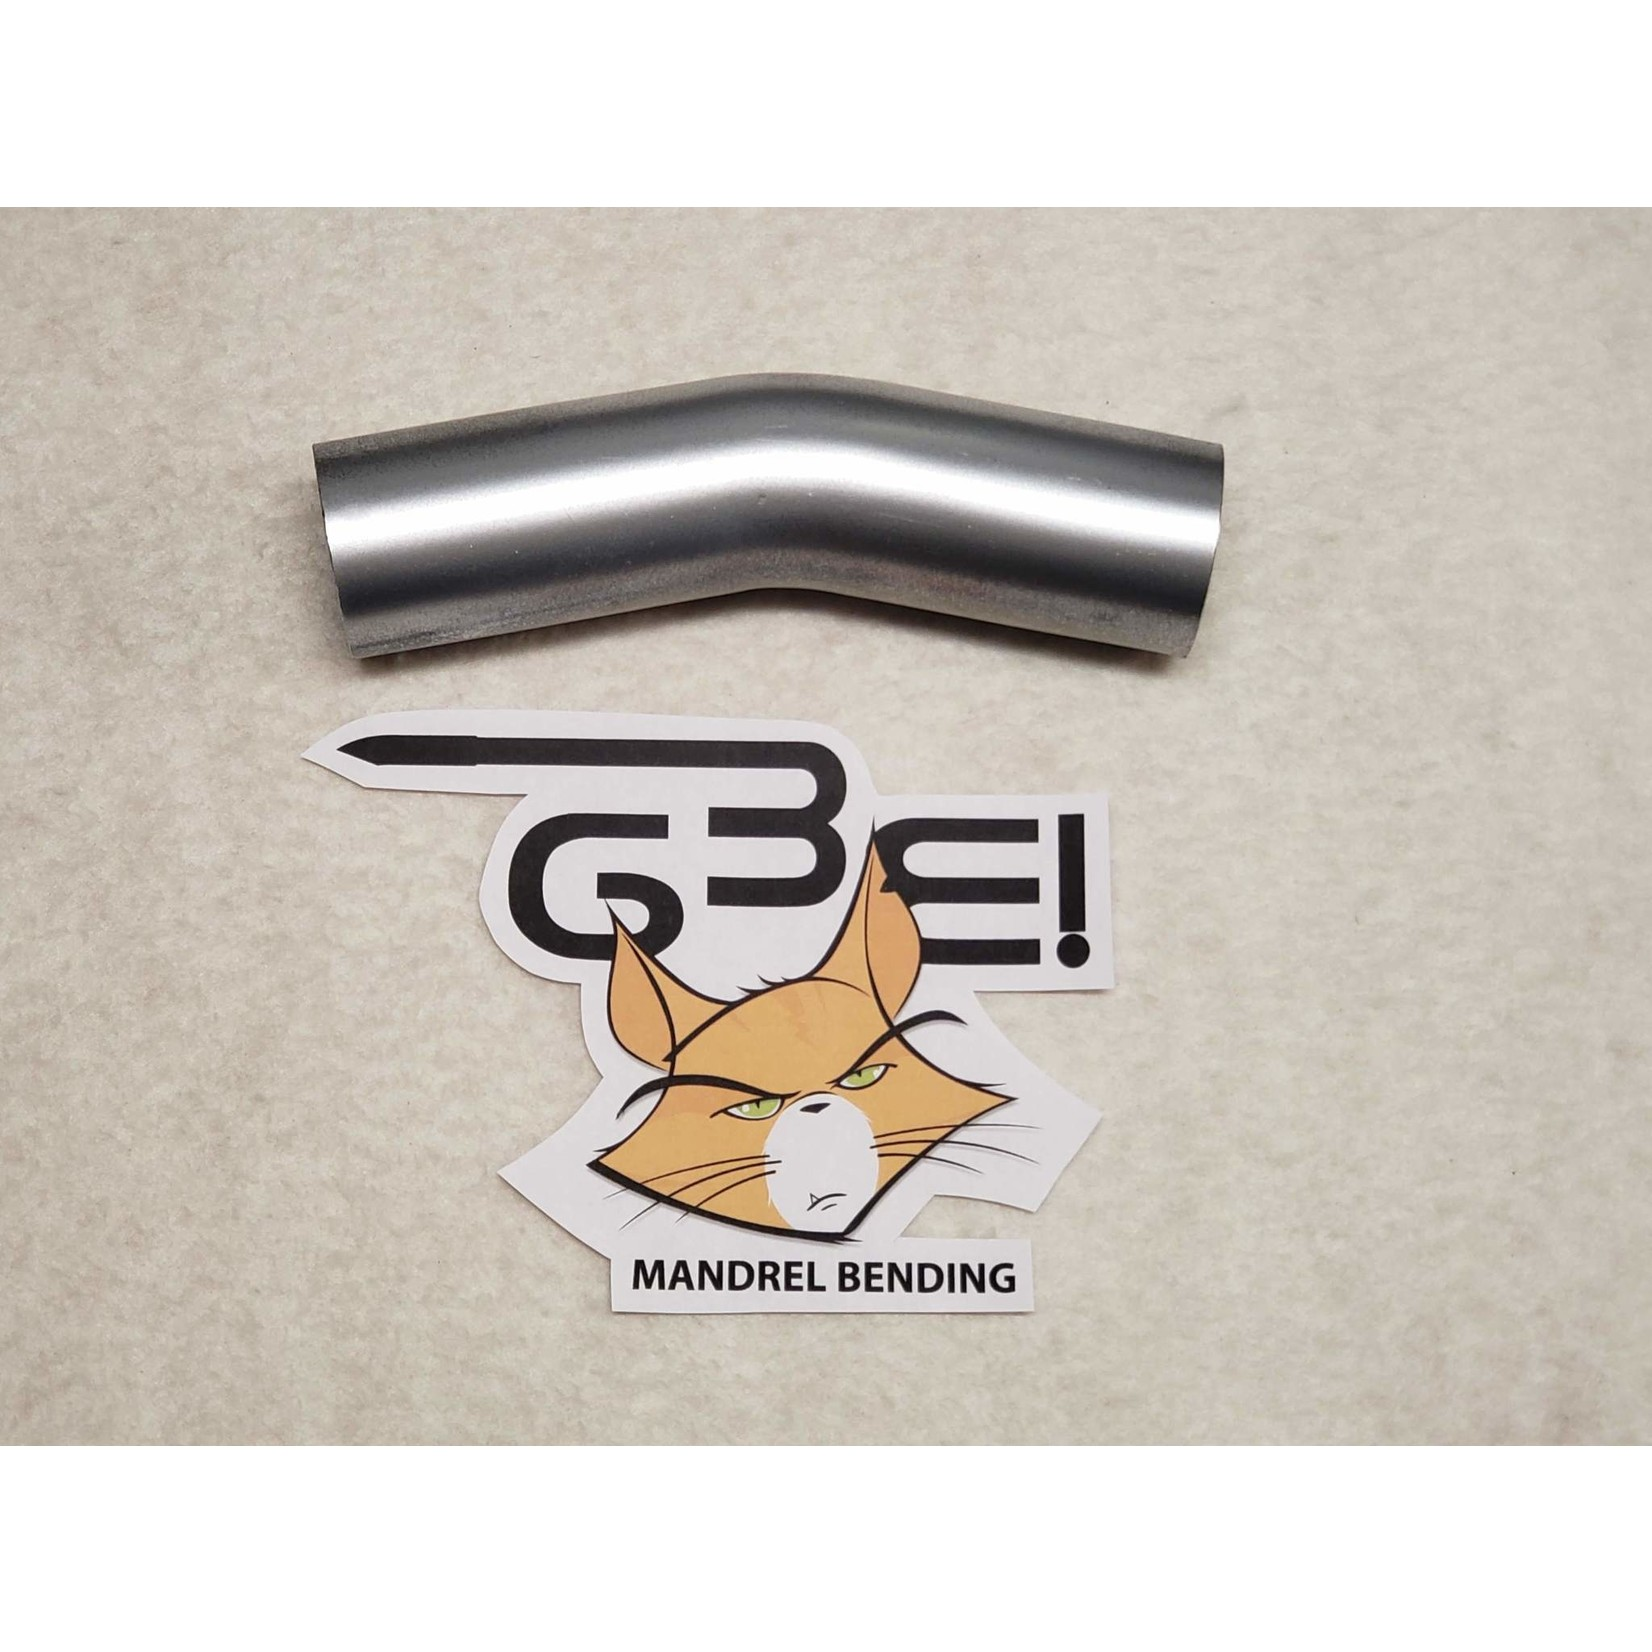 "GBE 2-1/4"" 18 DEGREE ALUMINIZED BEND"